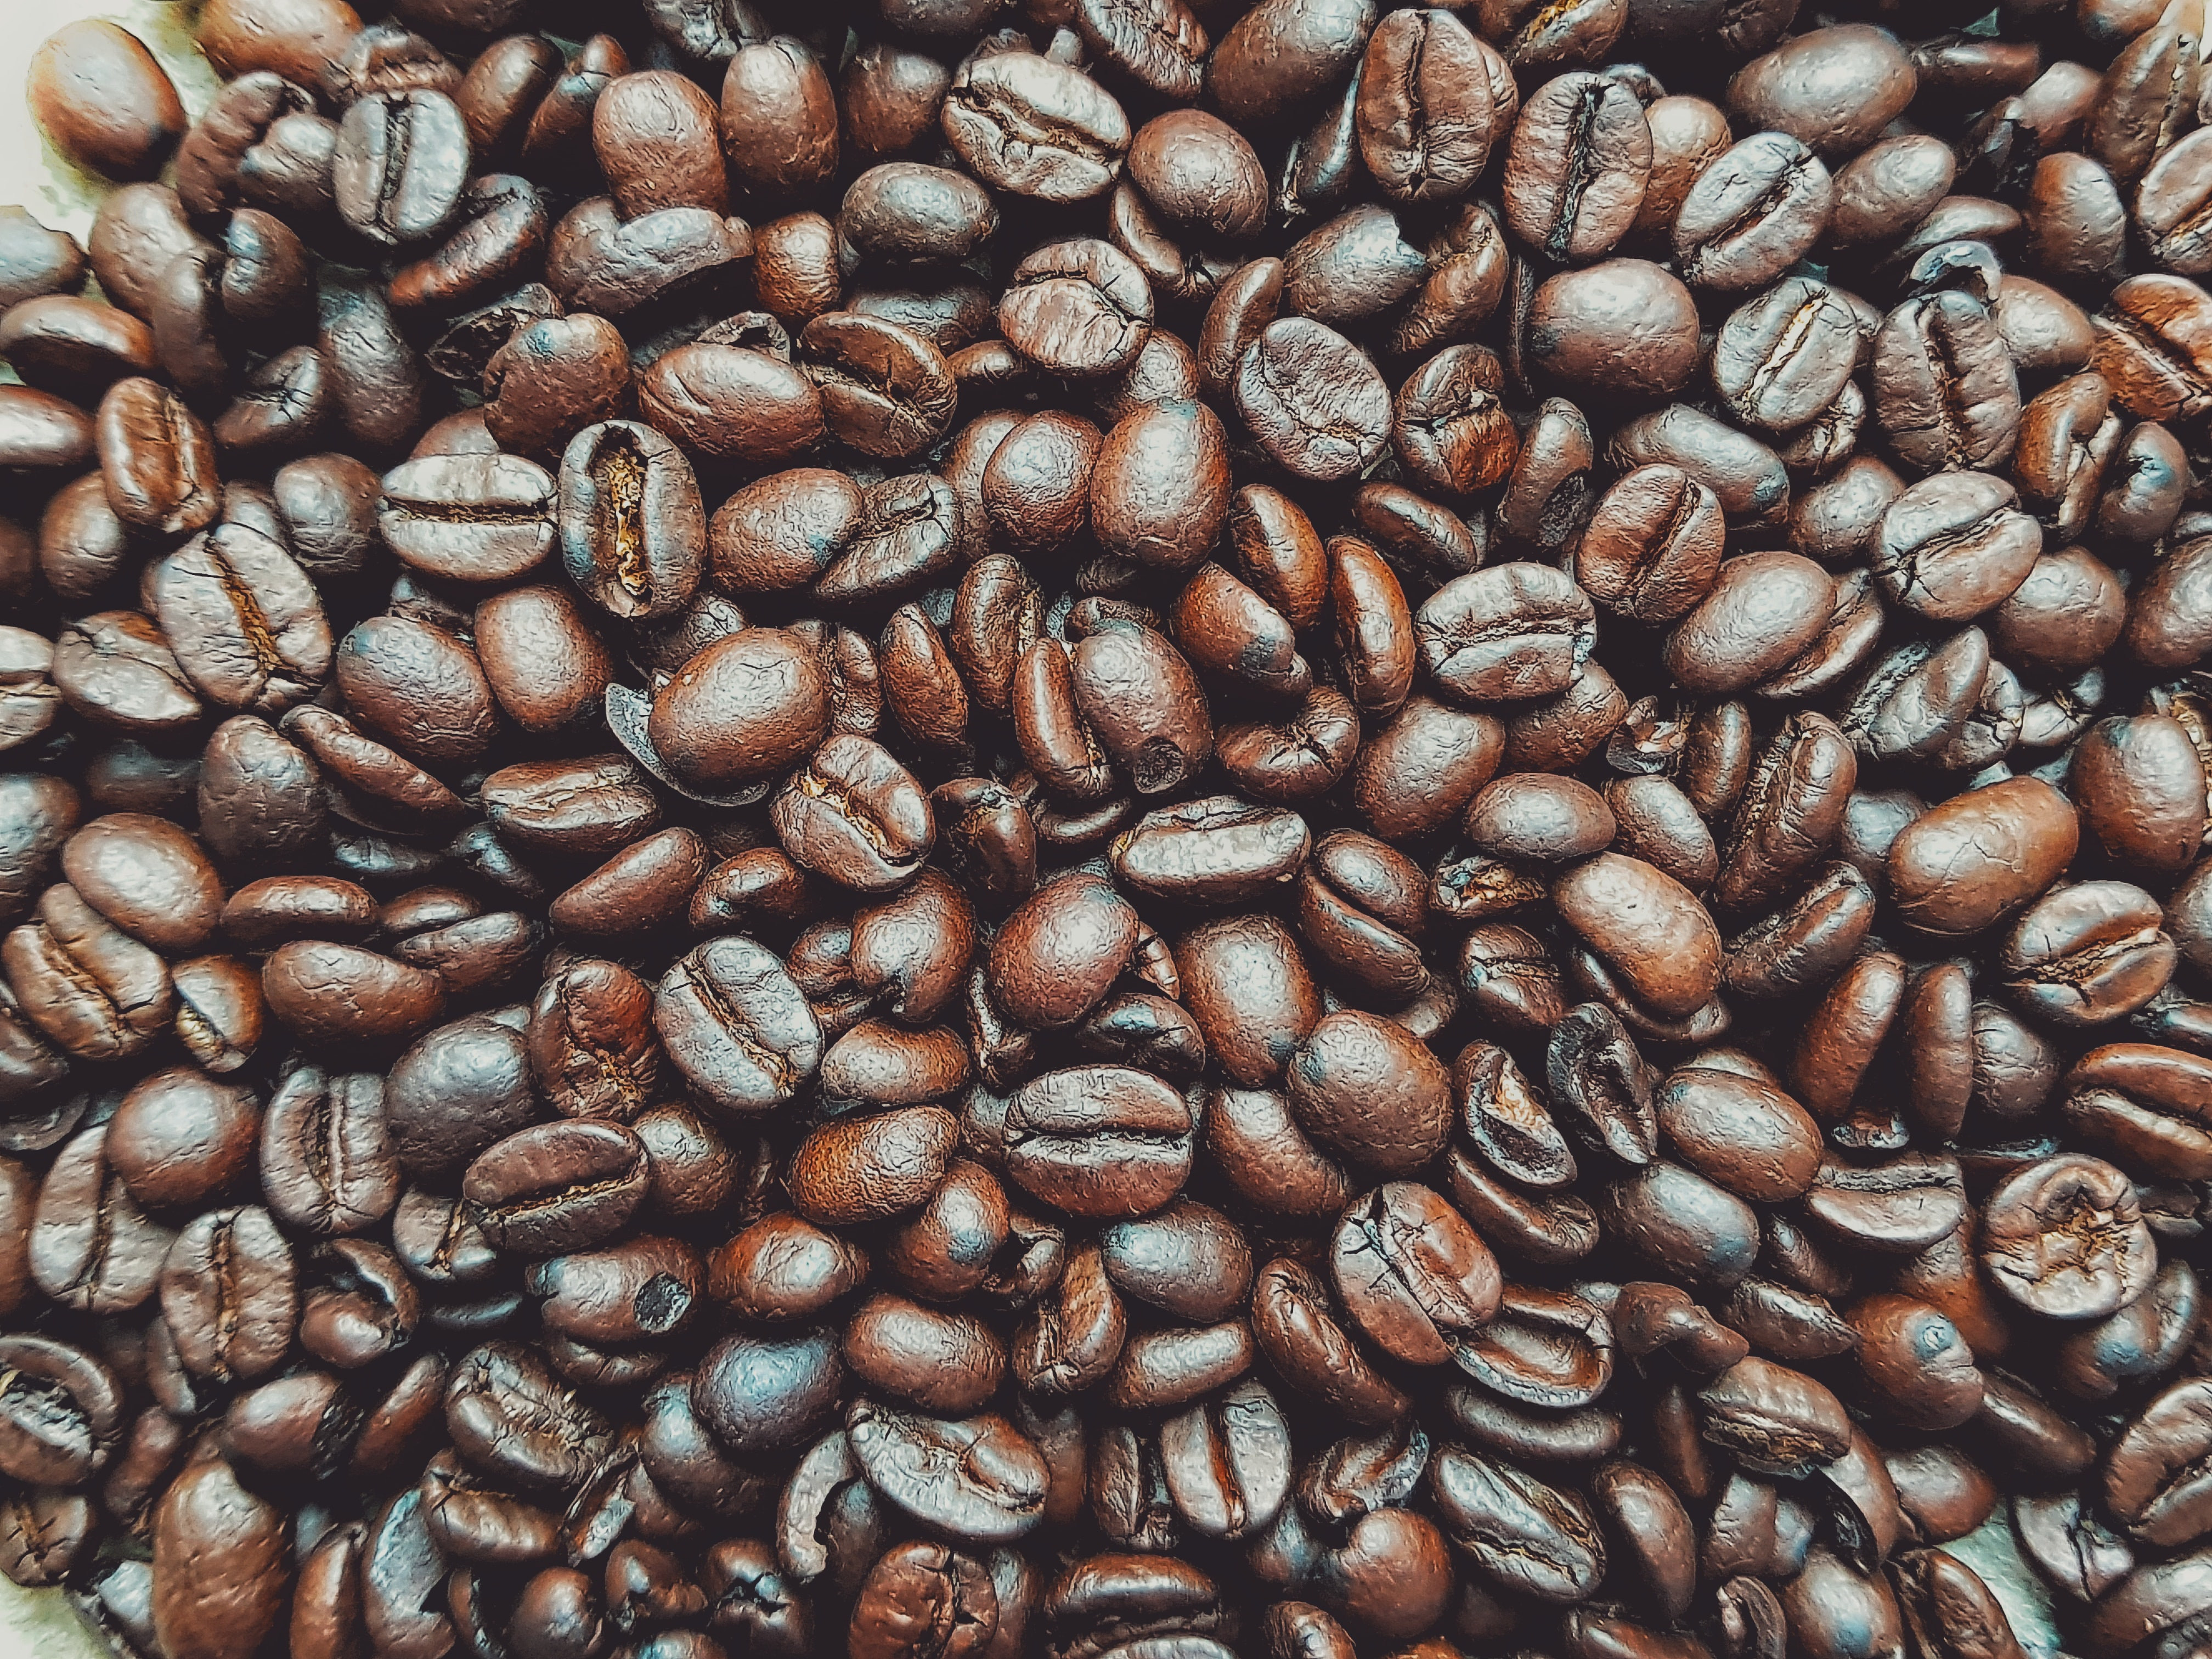 bunch of coffee beans